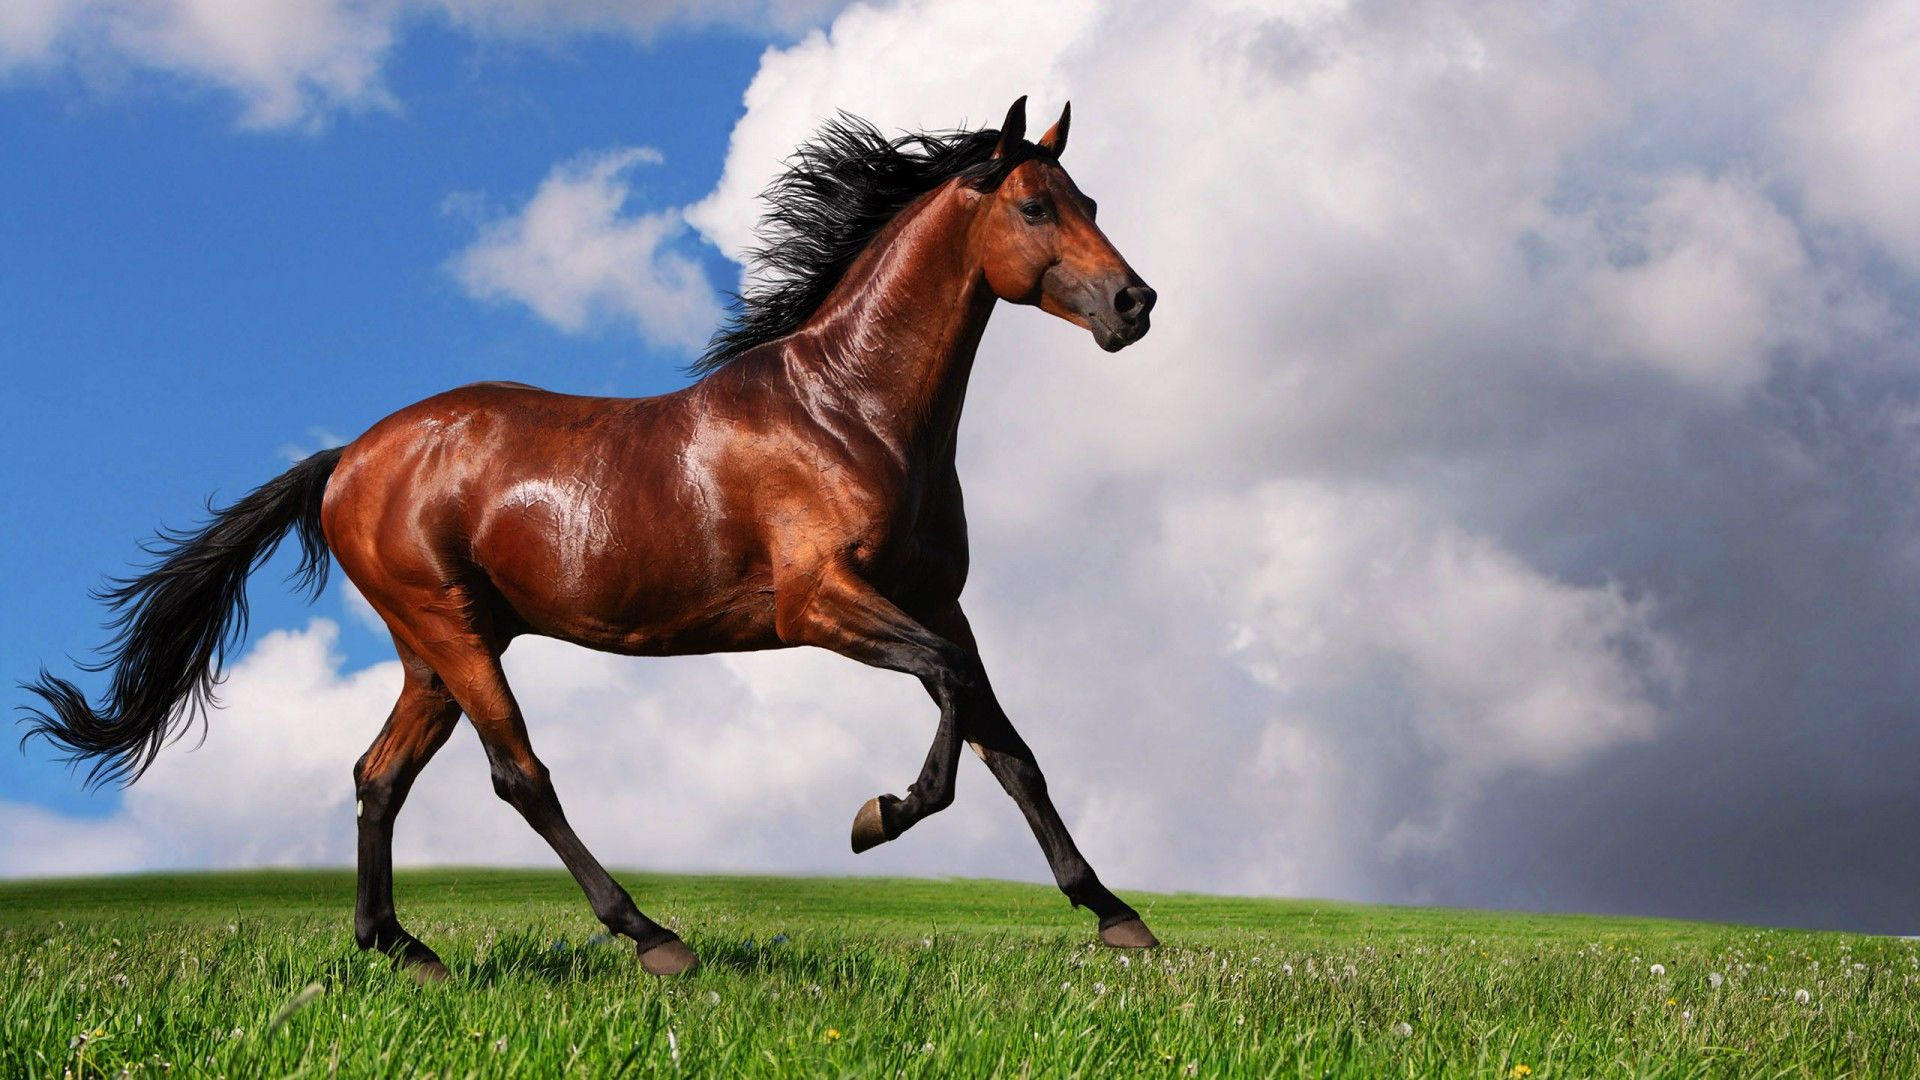 Equestrian horses hd wallpapers 2g jpeg image 1920 1080 equestrian horses hd wallpapers 2g jpeg image 1920 1080 pixels thecheapjerseys Choice Image